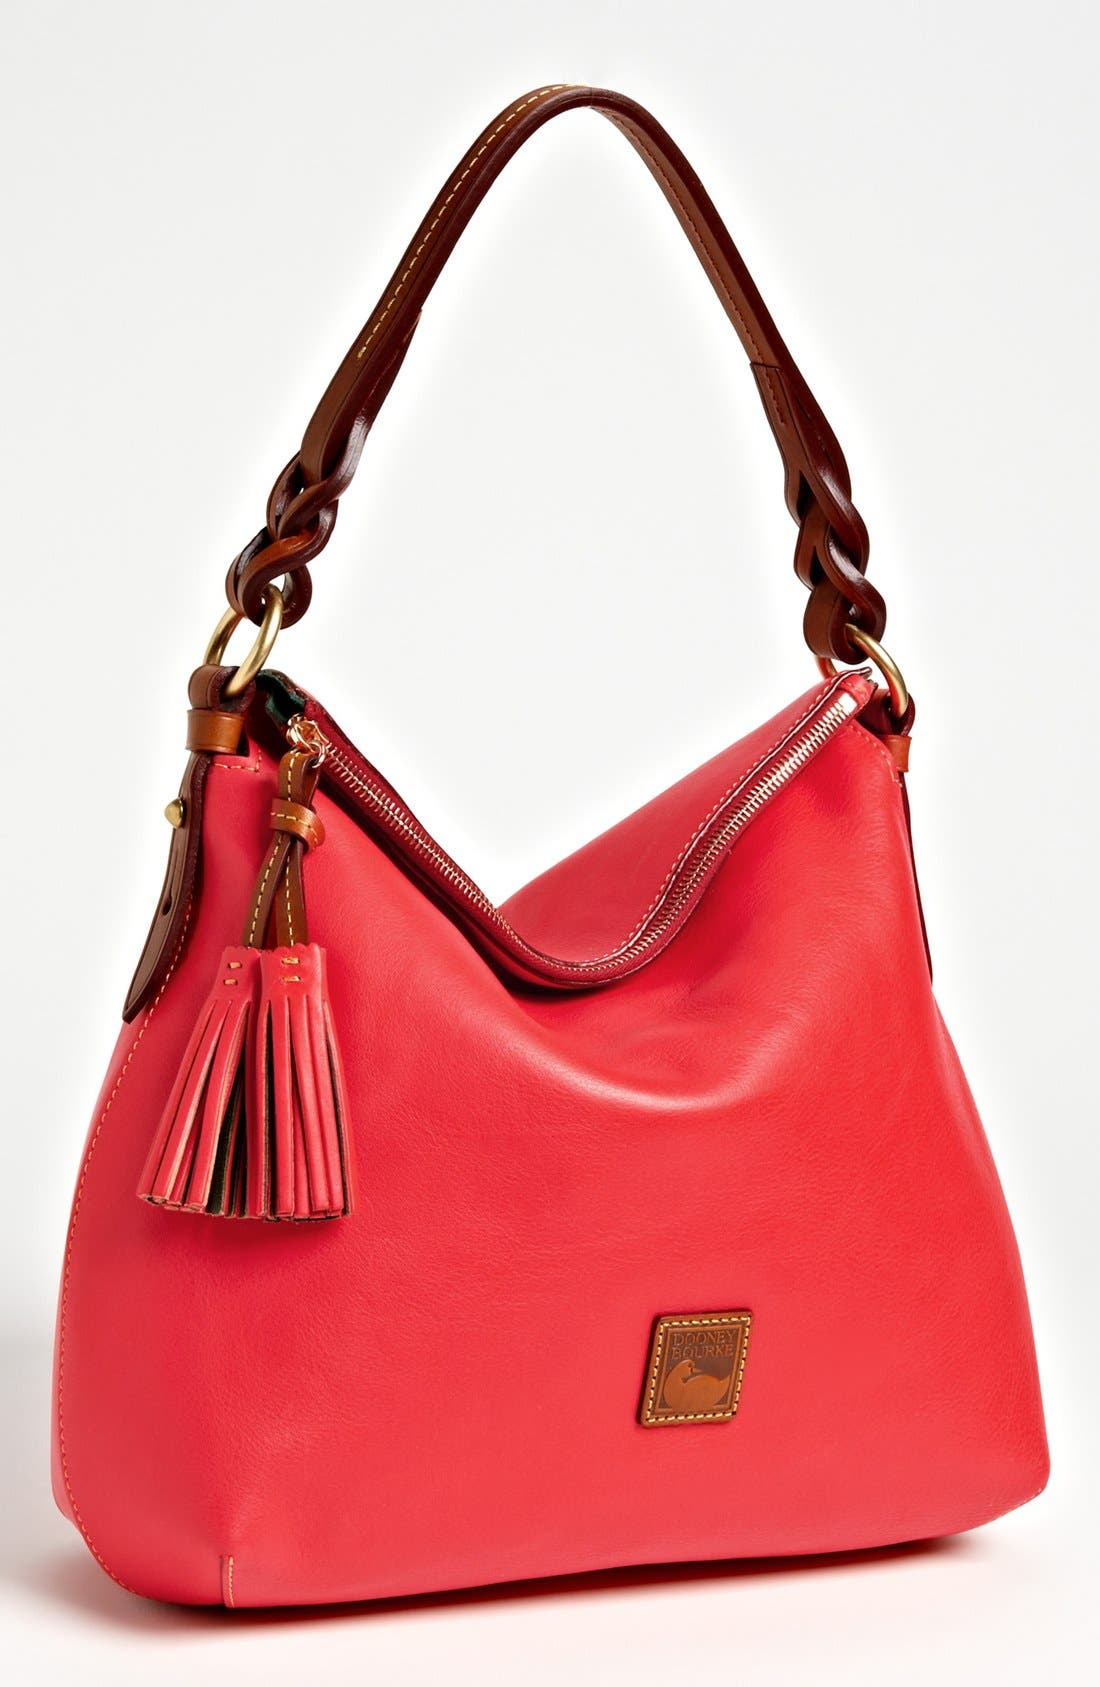 Alternate Image 1 Selected - Dooney & Bourke 'Twist Strap' Hobo, Large